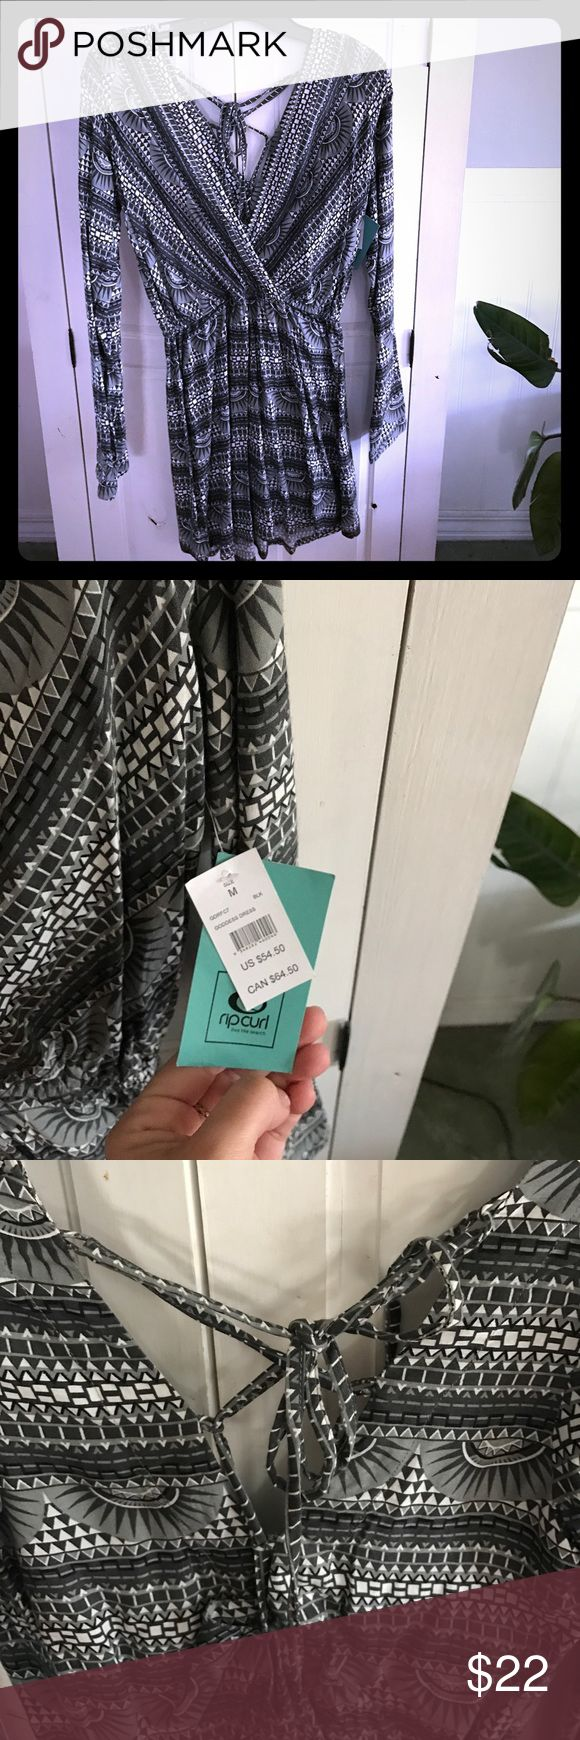 Rip Curl grey and white print dress Brand new with tags, never worn. Beautiful grey black and white print long sleeve dress with Lace up back detail. Slightly sheer, could be used as a going out dress or super fun beach cover up. Rip Curl Dresses Long Sleeve